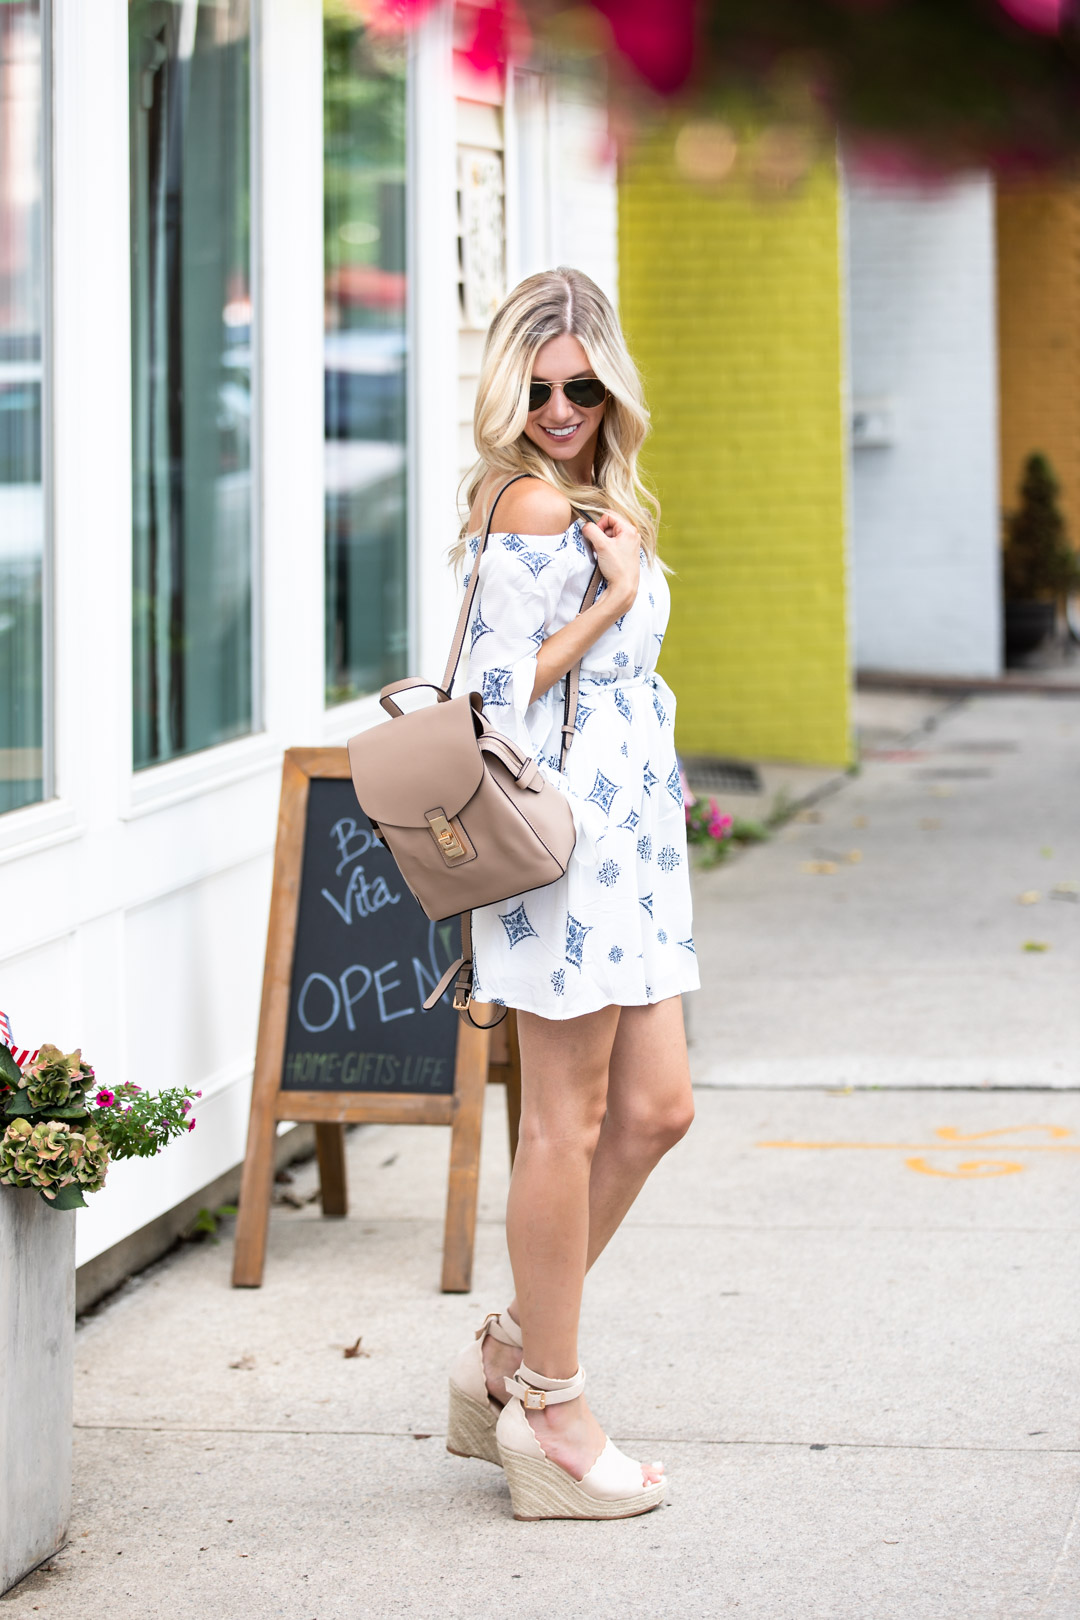 VICIDolls Blue and White owy Dress and Leather Backpack